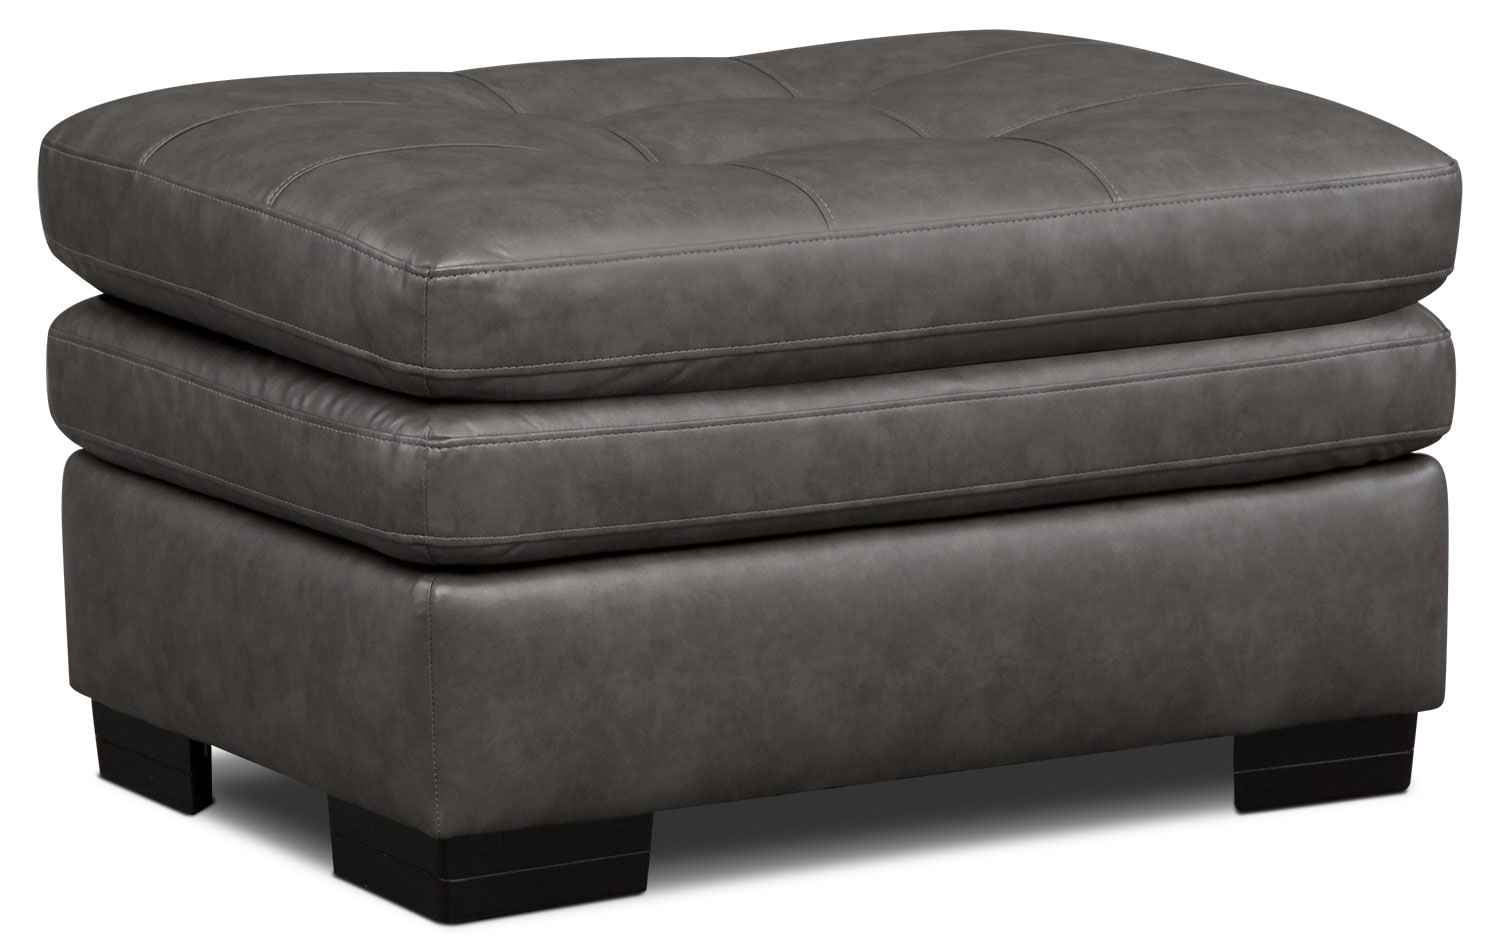 Living Room Furniture - Magnum Ottoman - Gray